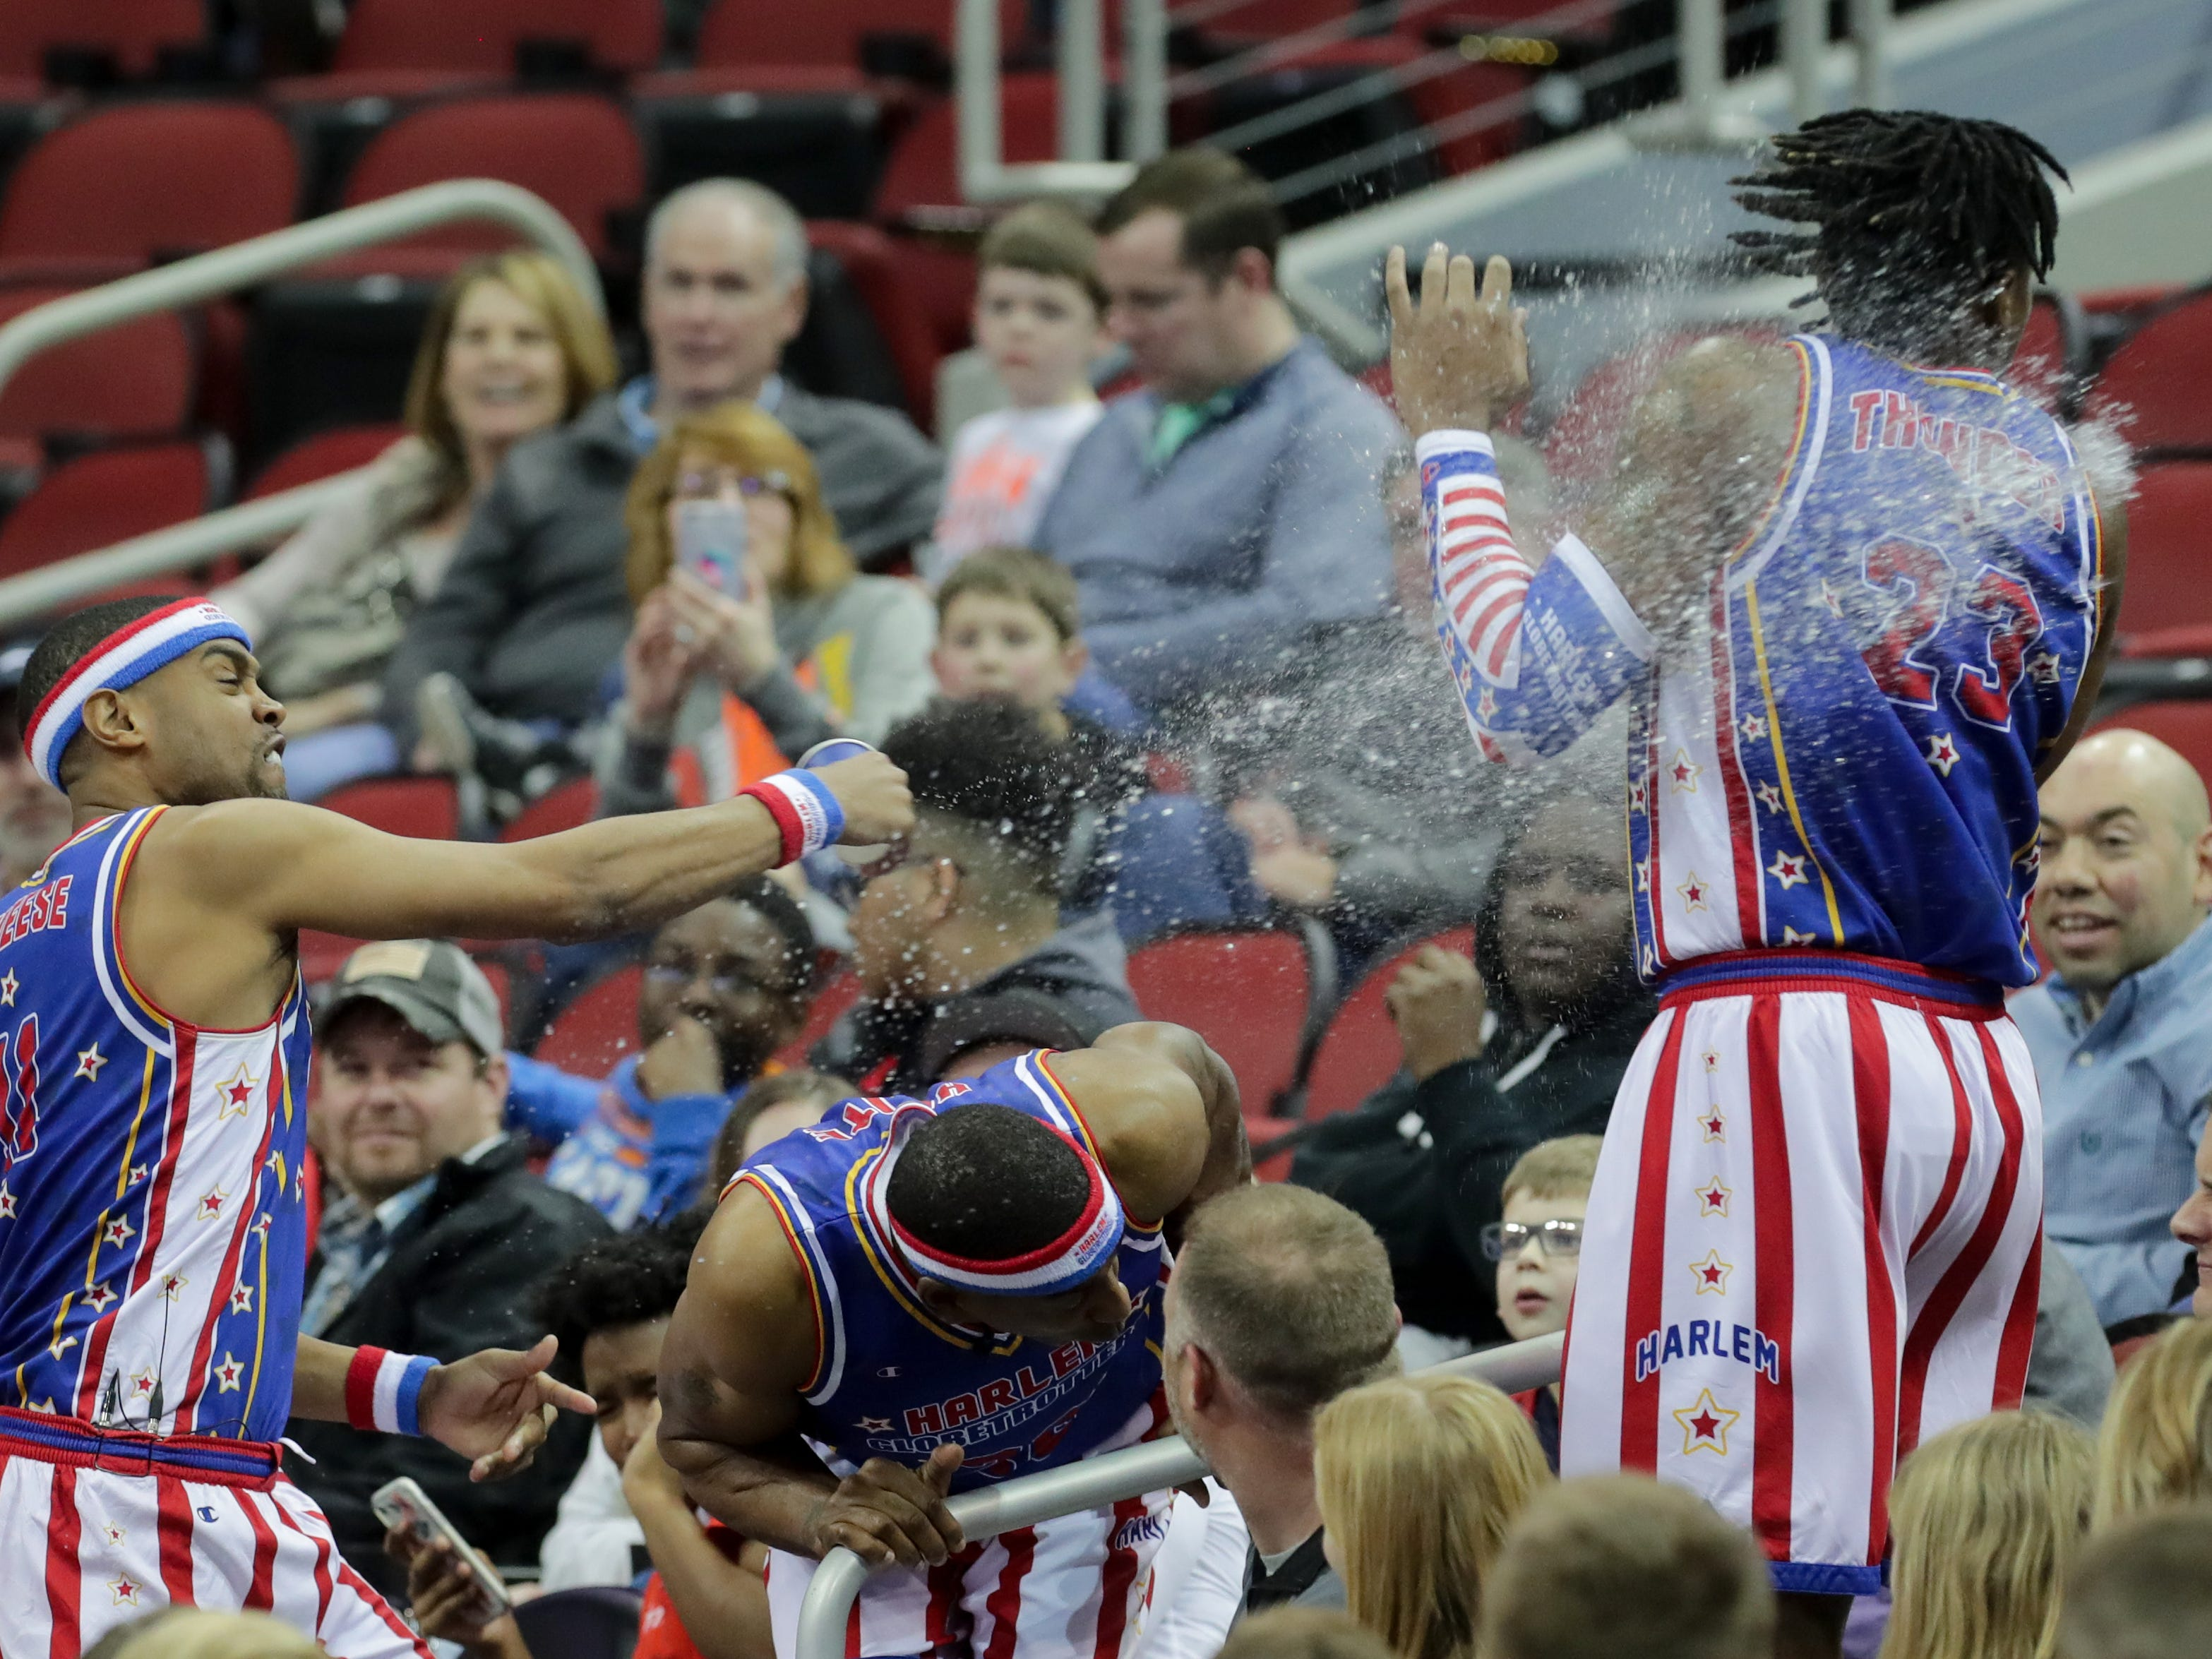 Harlem Globetrotters' Cheese sprays Thunder with water.